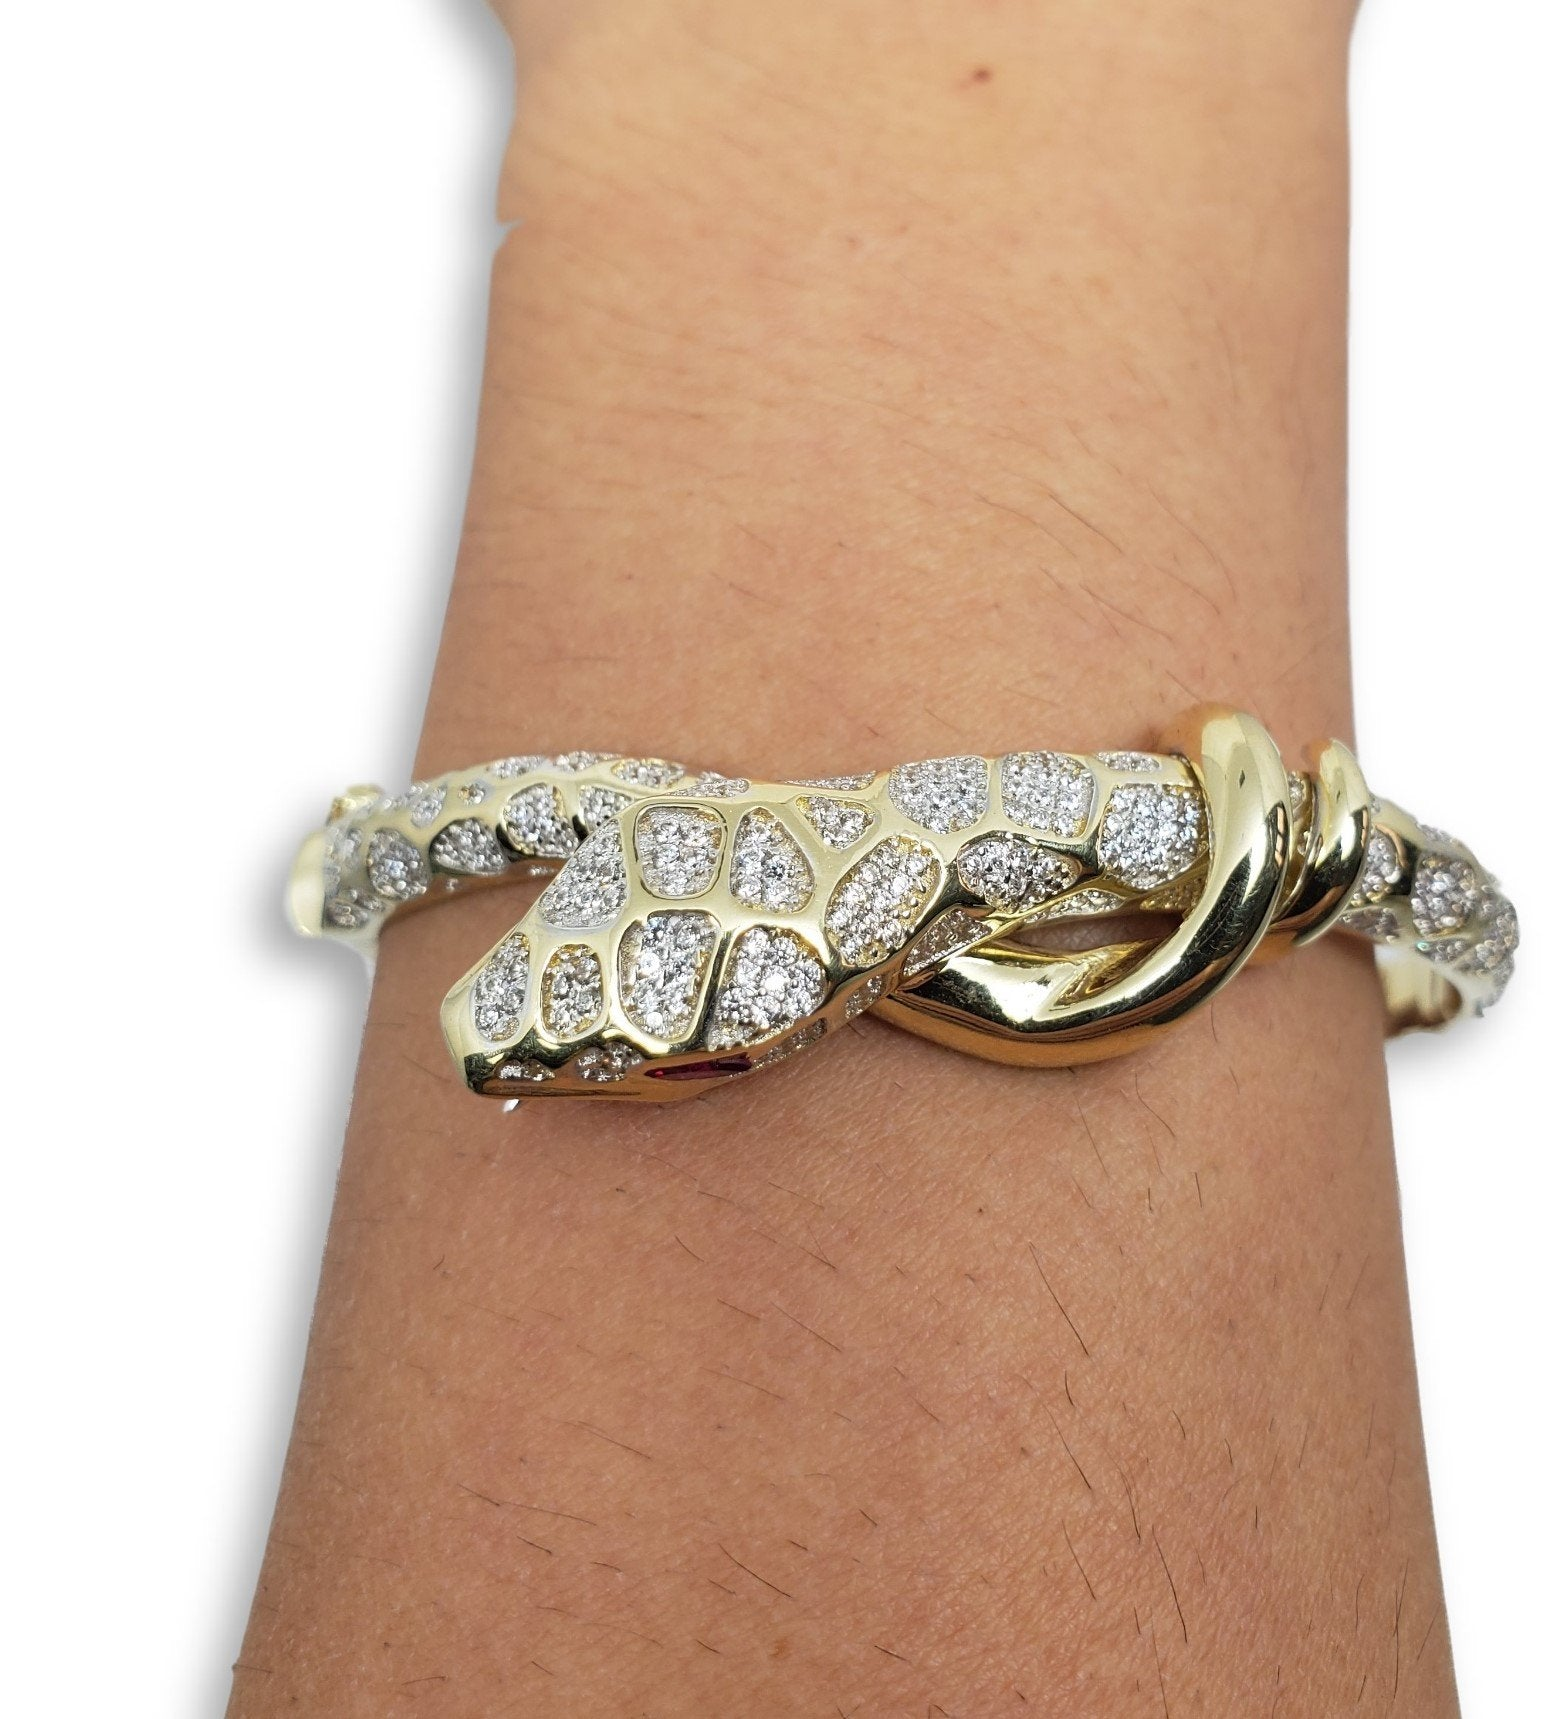 Bracelet9 en or 10K / Bangle9 in 10K gold - orquebec